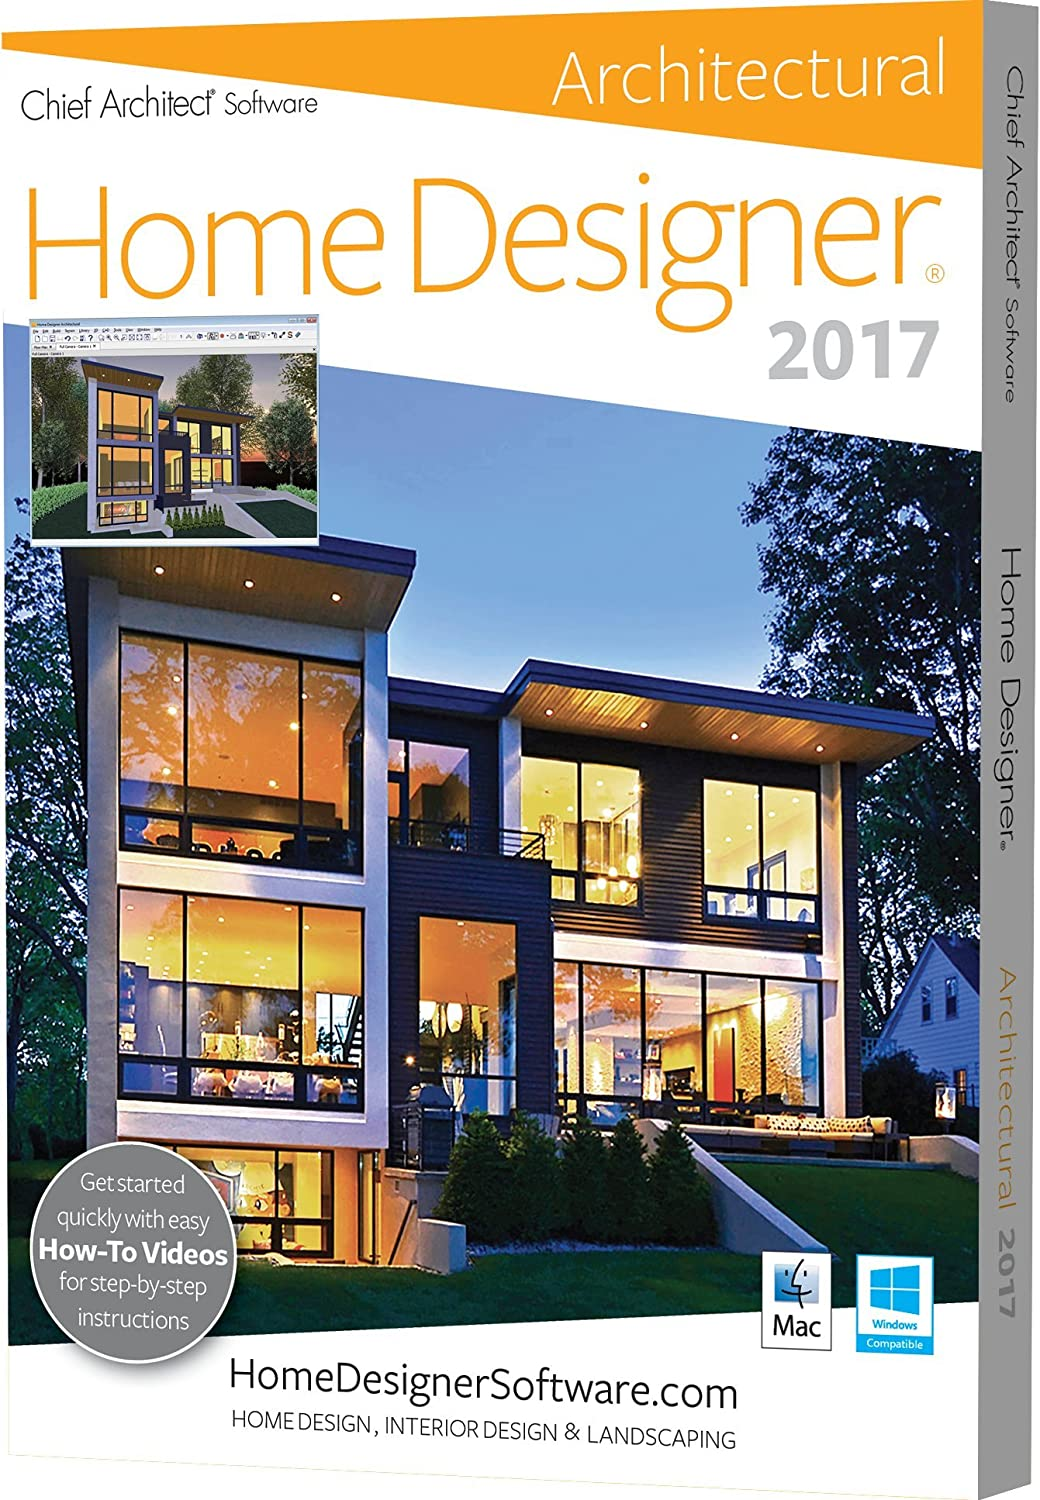 amazoncom chief architect home designer architectural 2017 software - Architect Home Designer